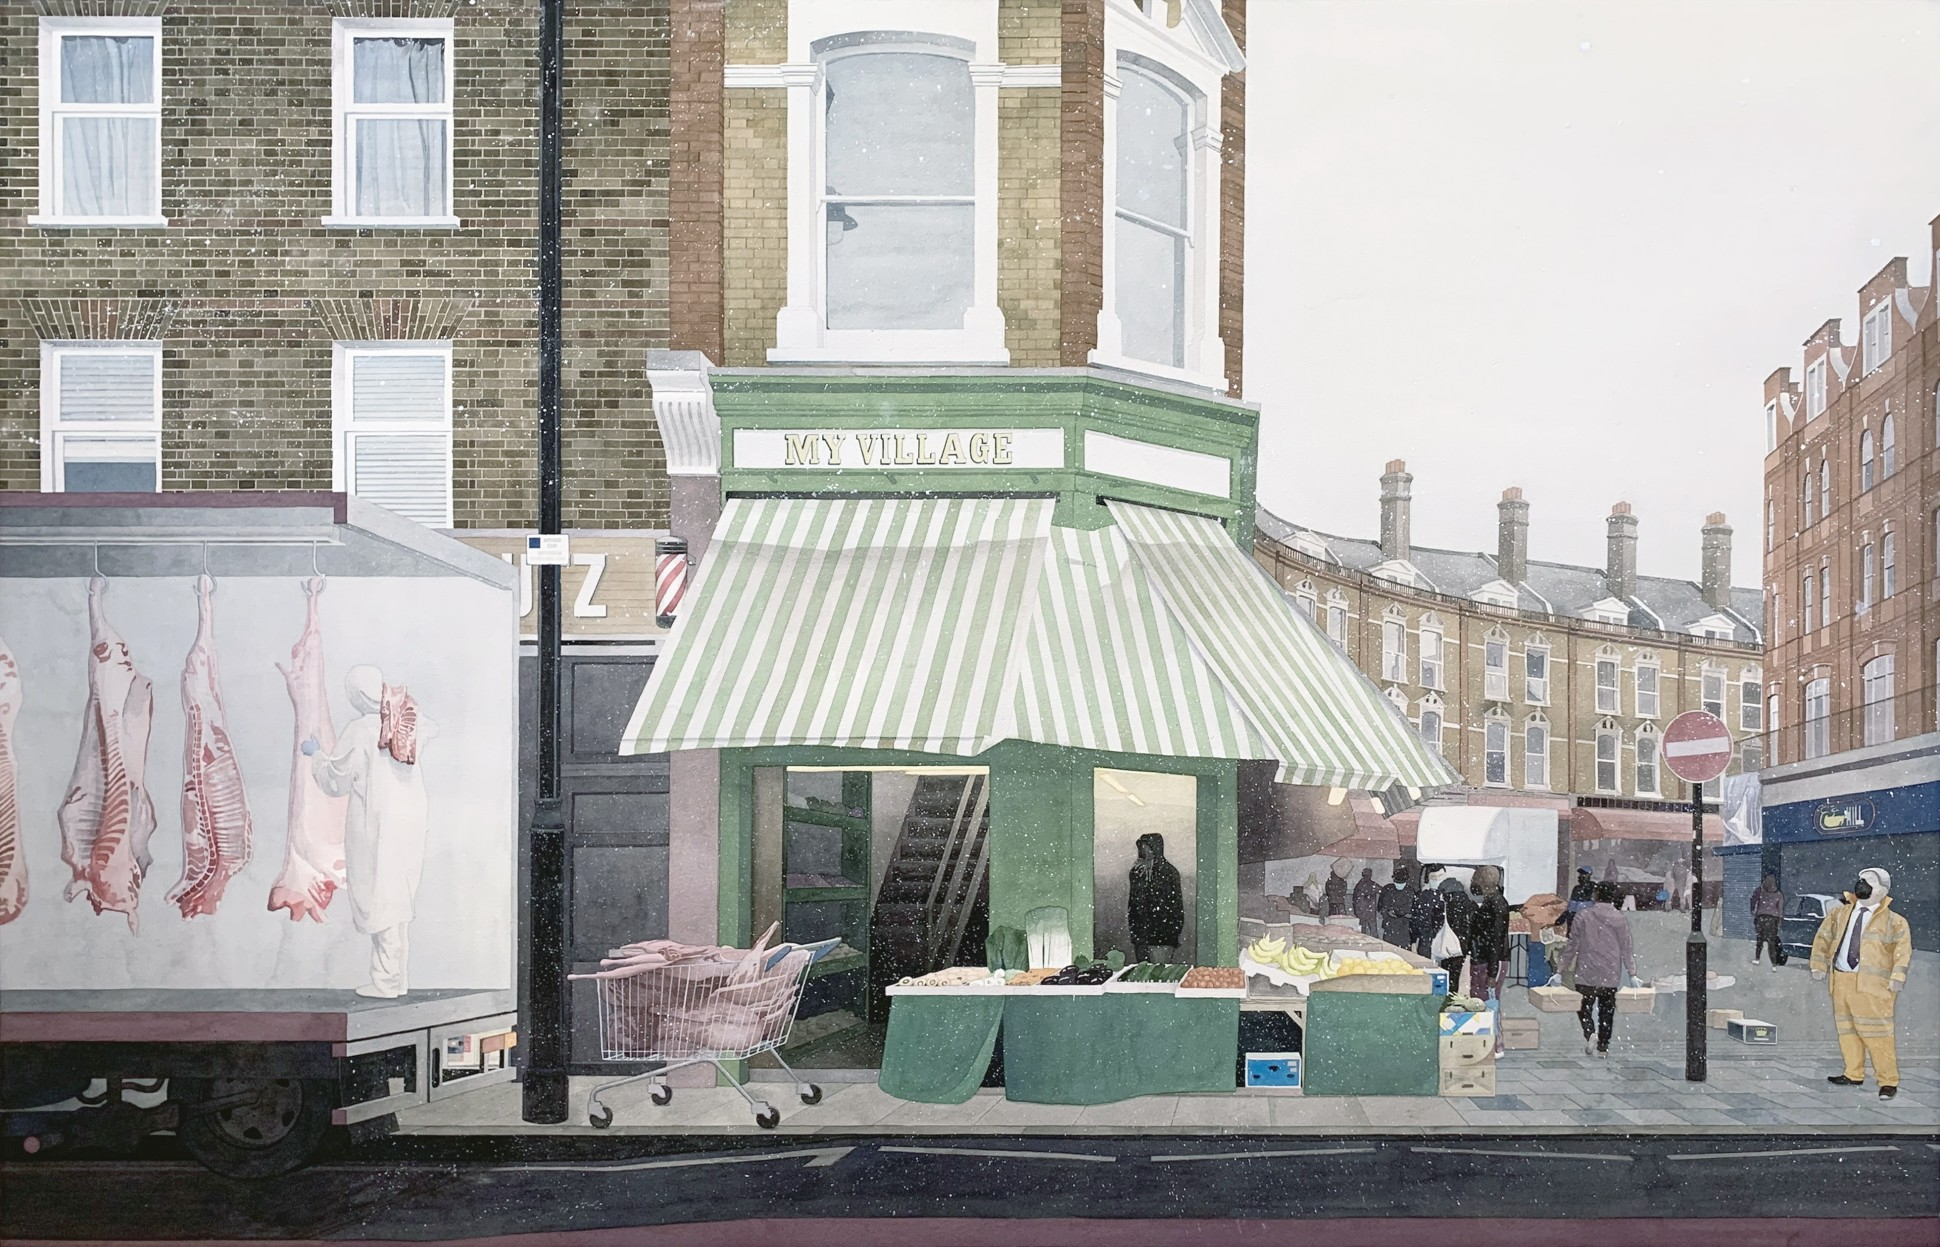 Common Market, 2021 103 x 154 cm. / 41 x 60 in. (Framed size) Watercolor and gouache on paper